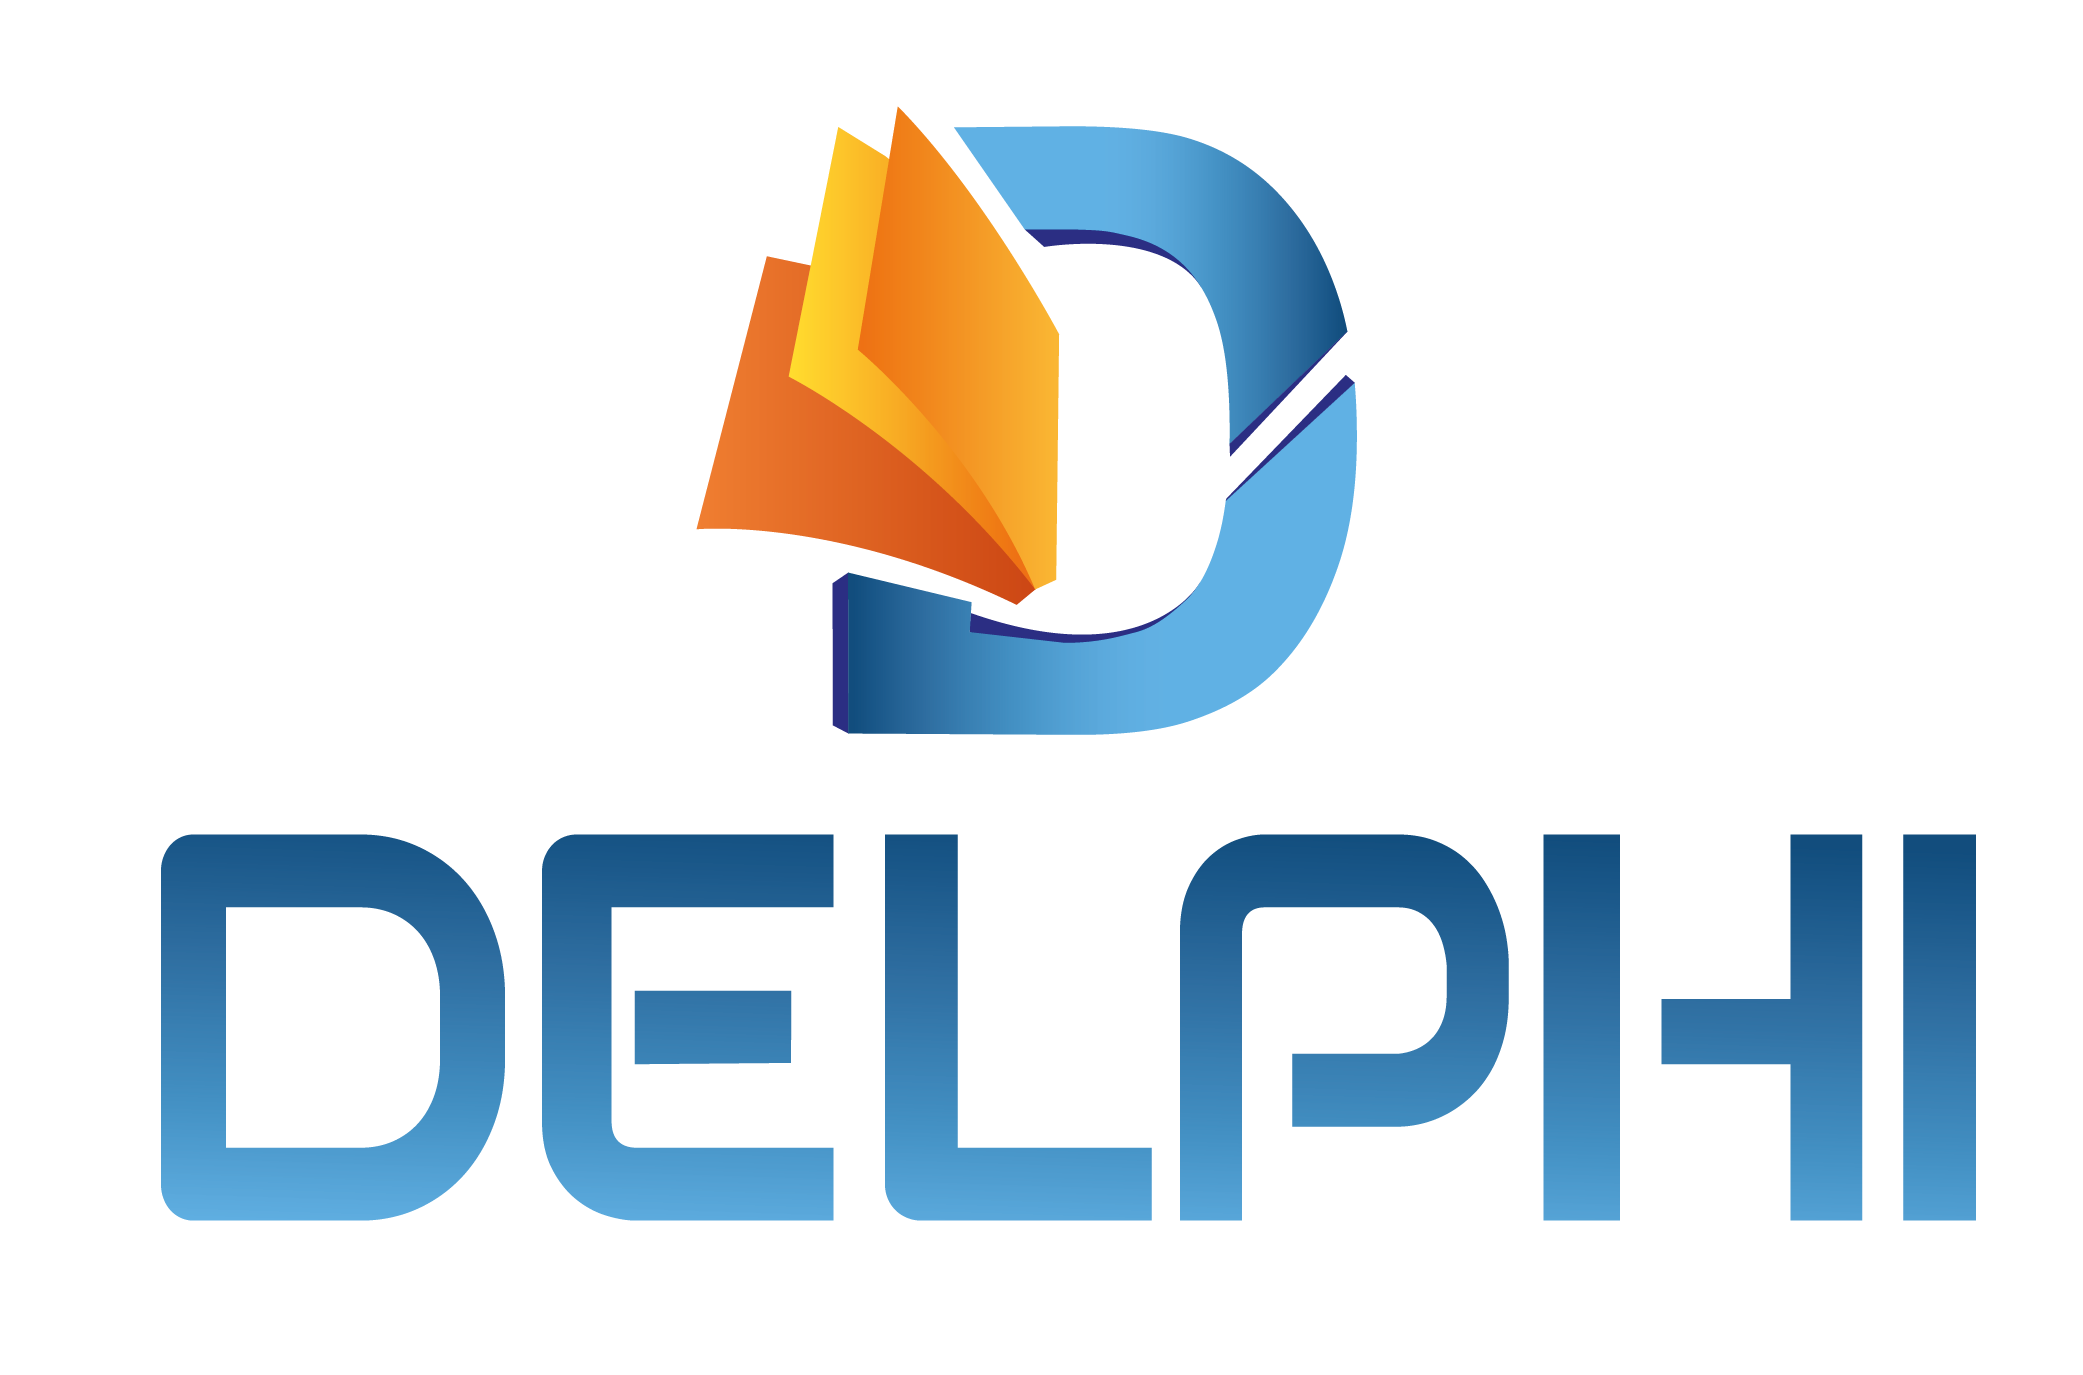 More about Delphi Star Training Centre